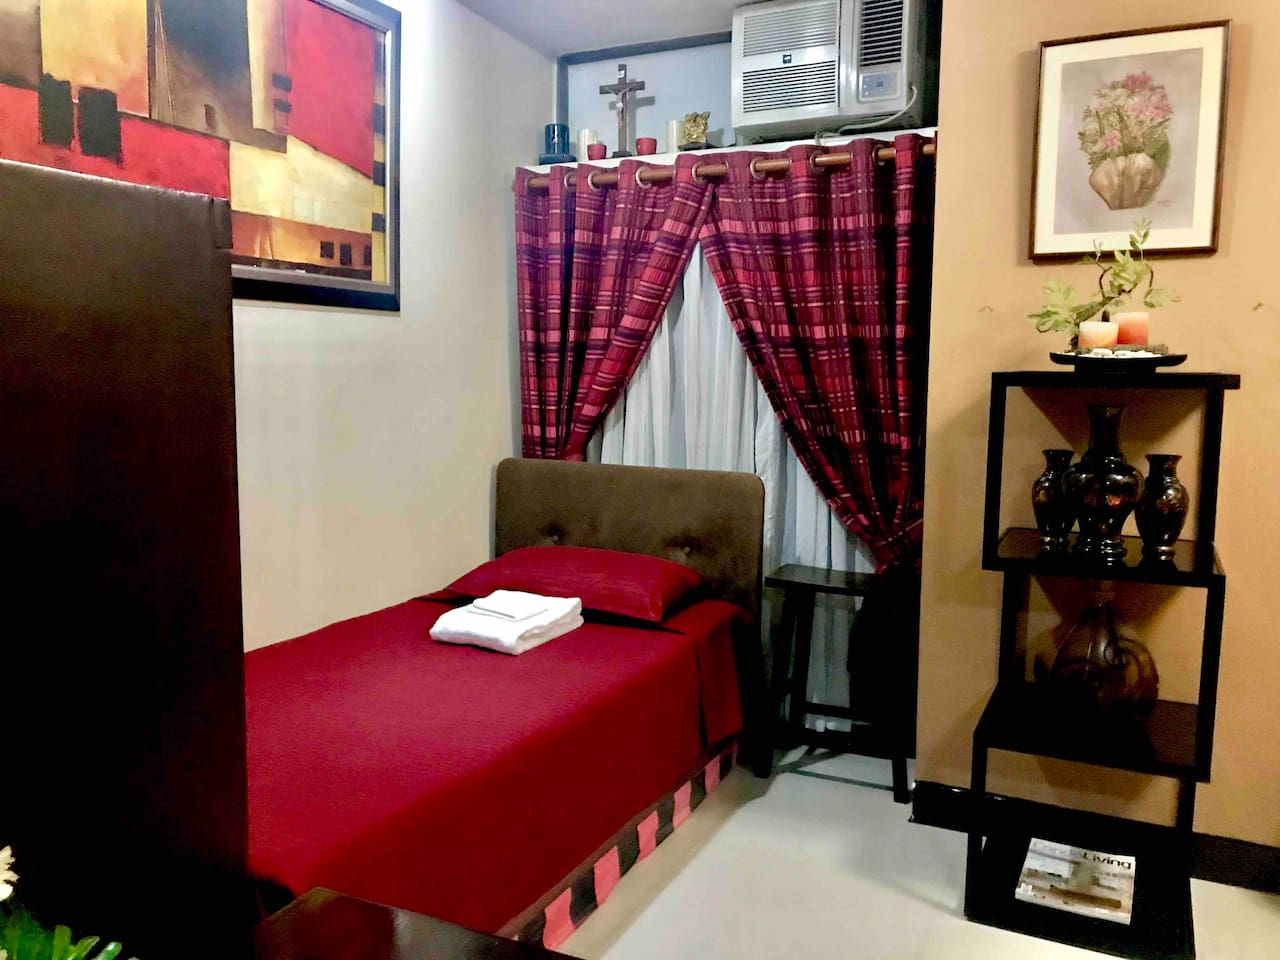 The Unit has one single-bed and another floor mattress for the 2nd guest.